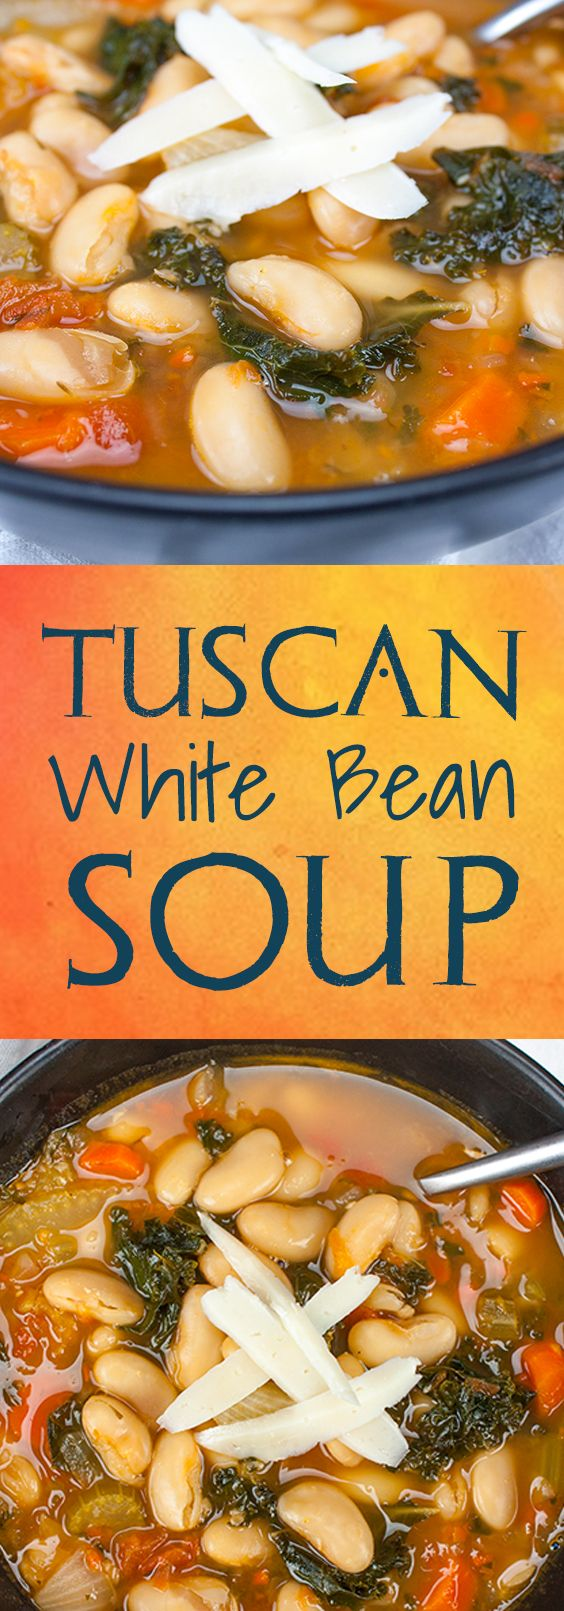 Tuscan White Bean Soup - Easy 30 minute meal. So warm, satisfying and healthy!